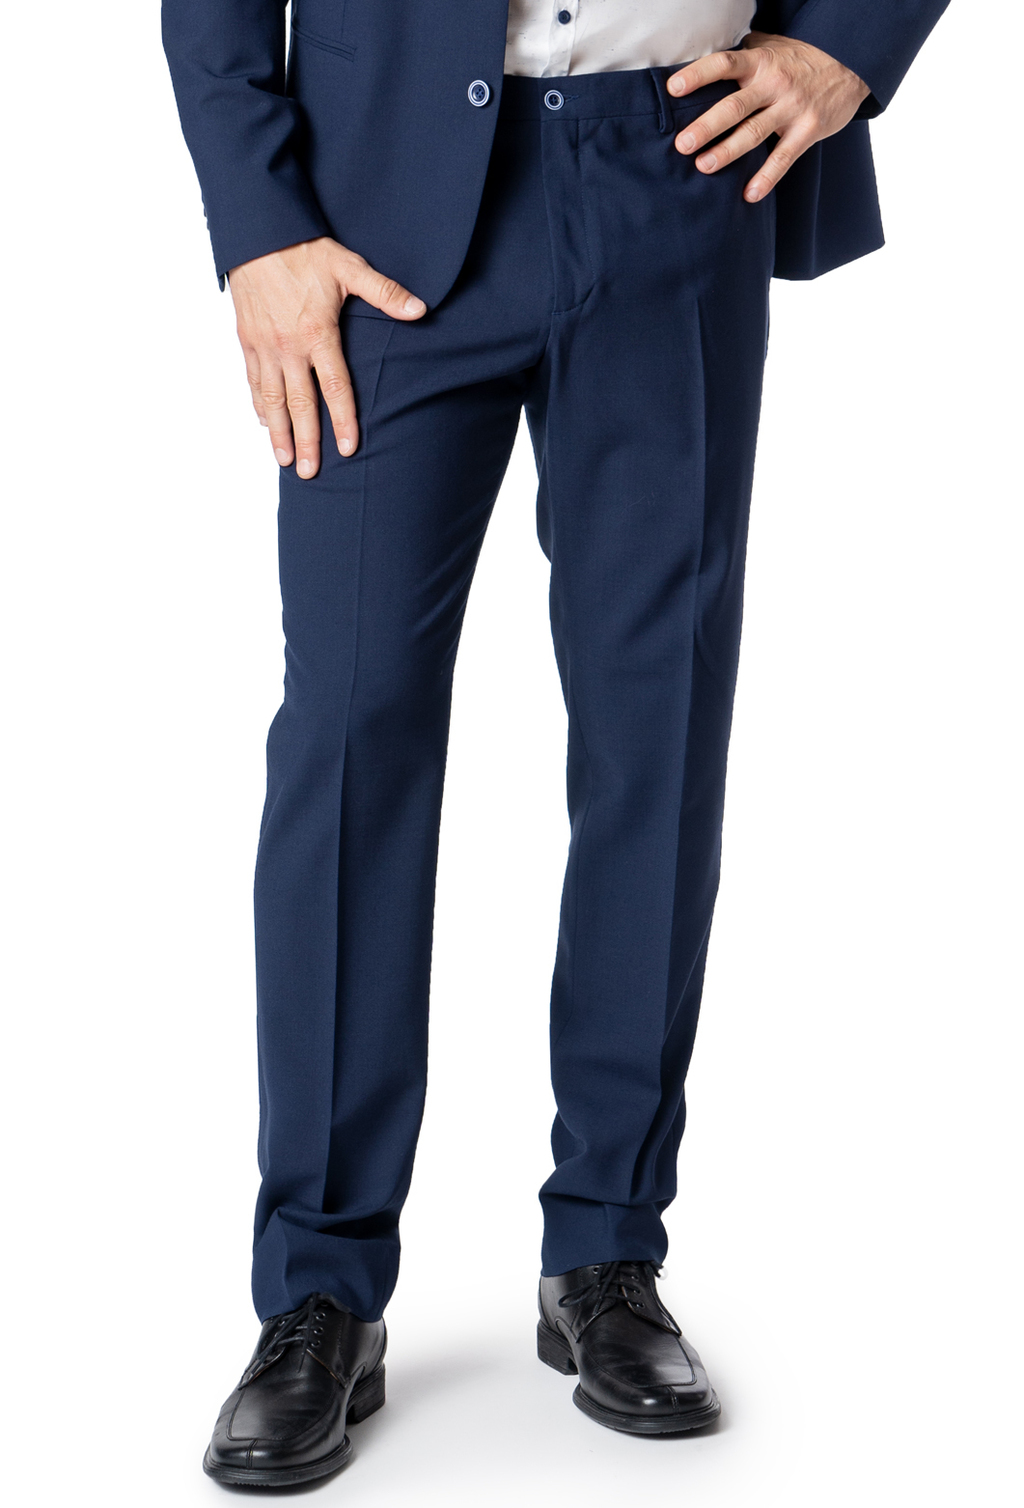 MEN'S TROUSER AQUALASTIC